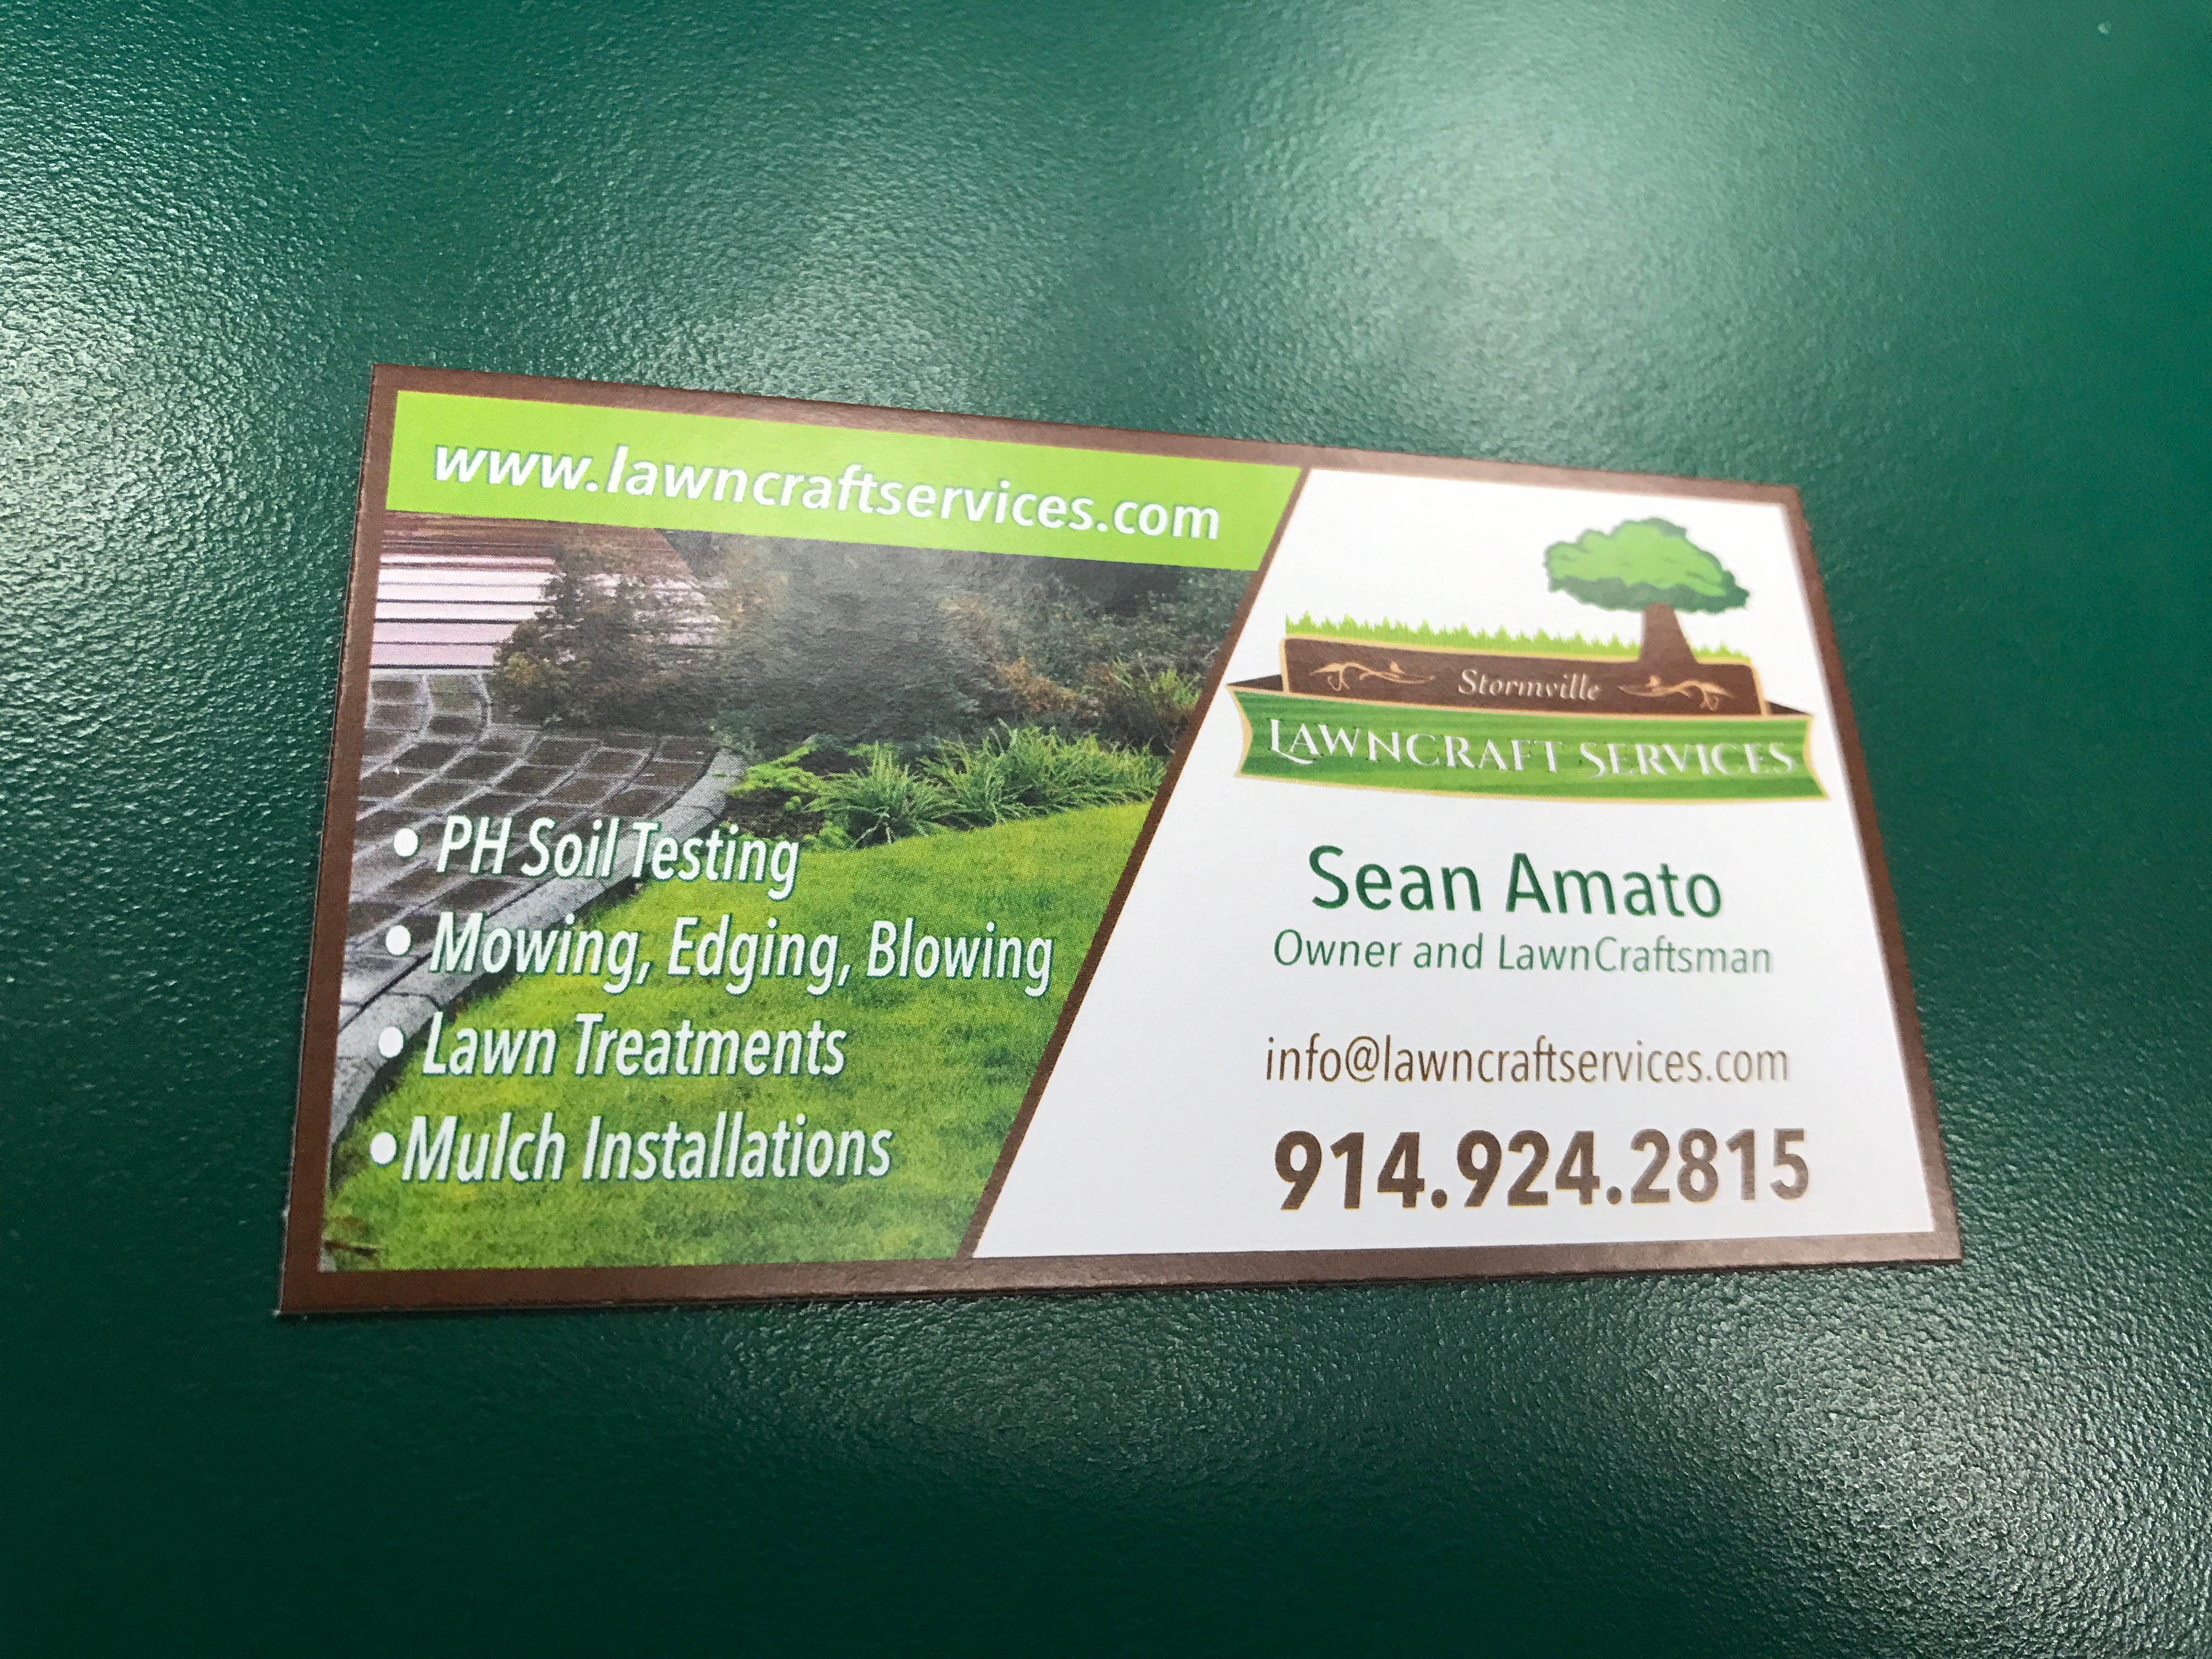 Lawncraft Services